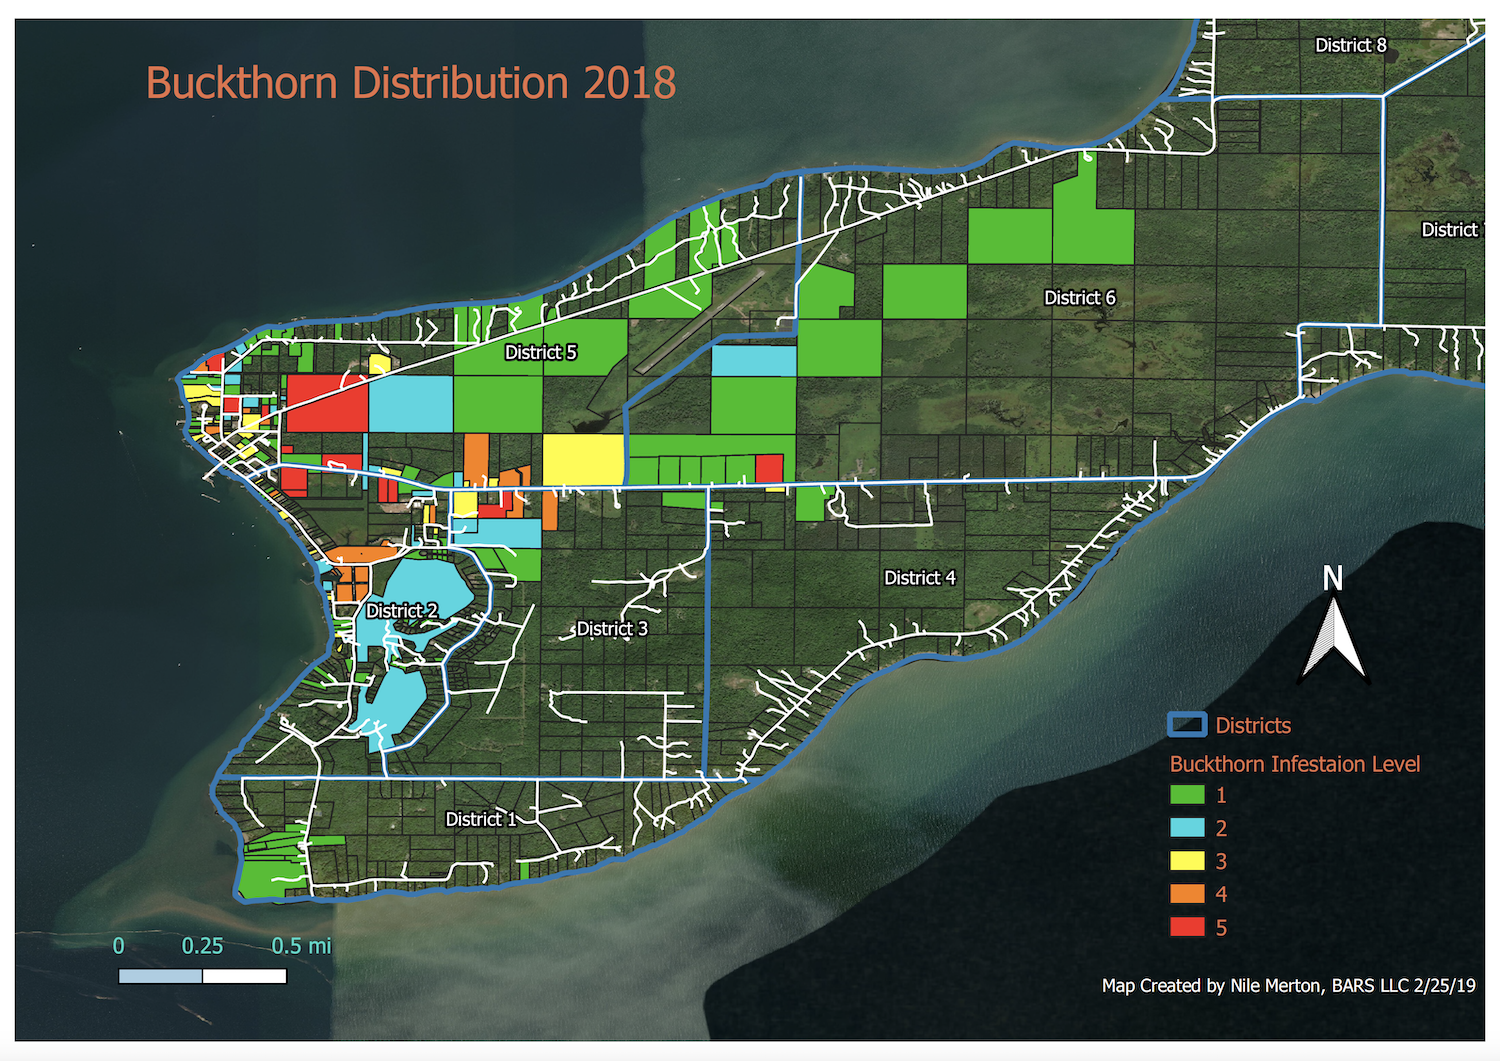 Buckthorn infestation on Madeline Island (1 = lowest, red = highest)